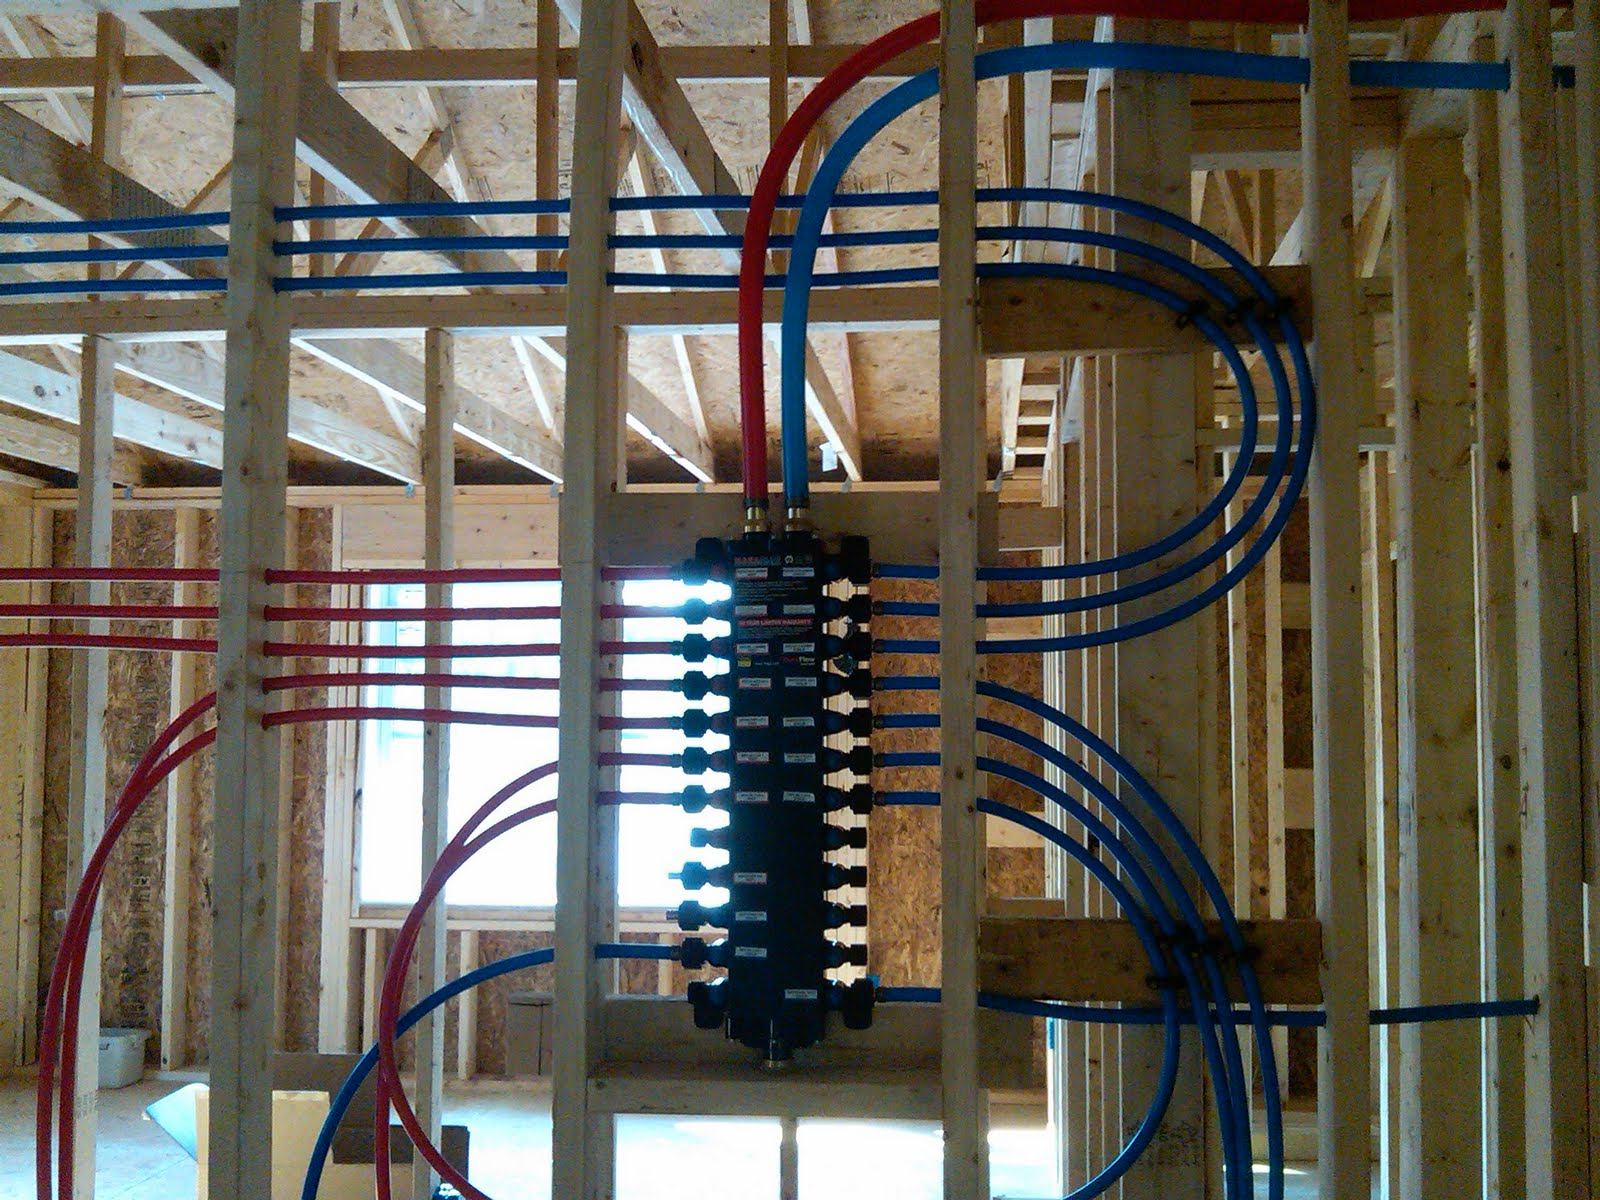 Bathroom Rough Wiring Diagram Site From House To Garage Electrical Diy Chatroom Home Not Quite A Teardown Plumbing Progress Pex In Conduit Walls Wood